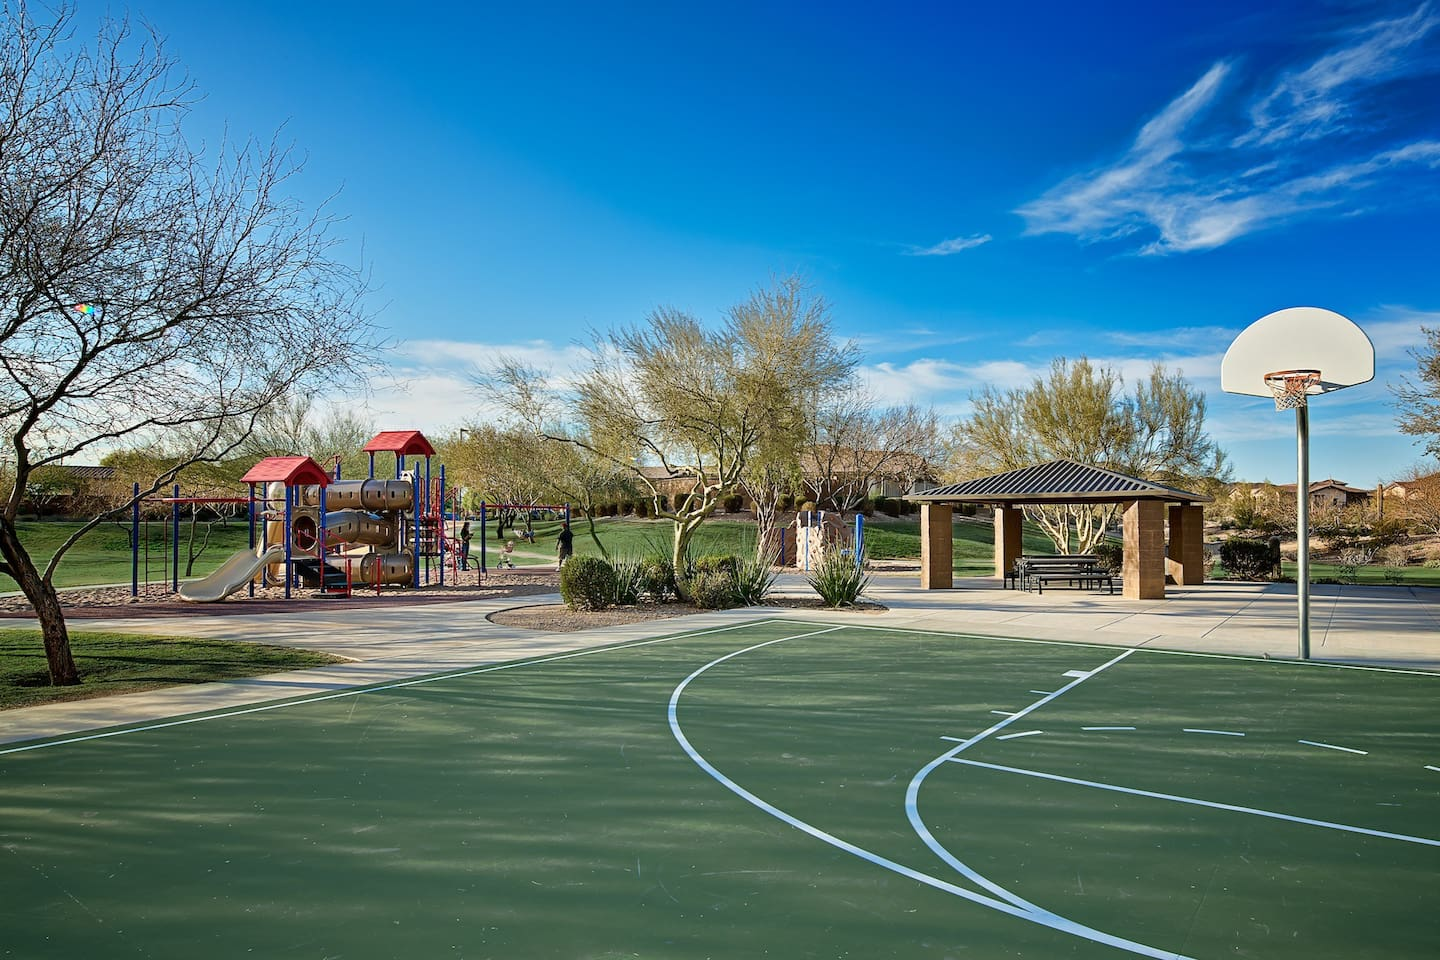 Nearby park with basketball court and playground.